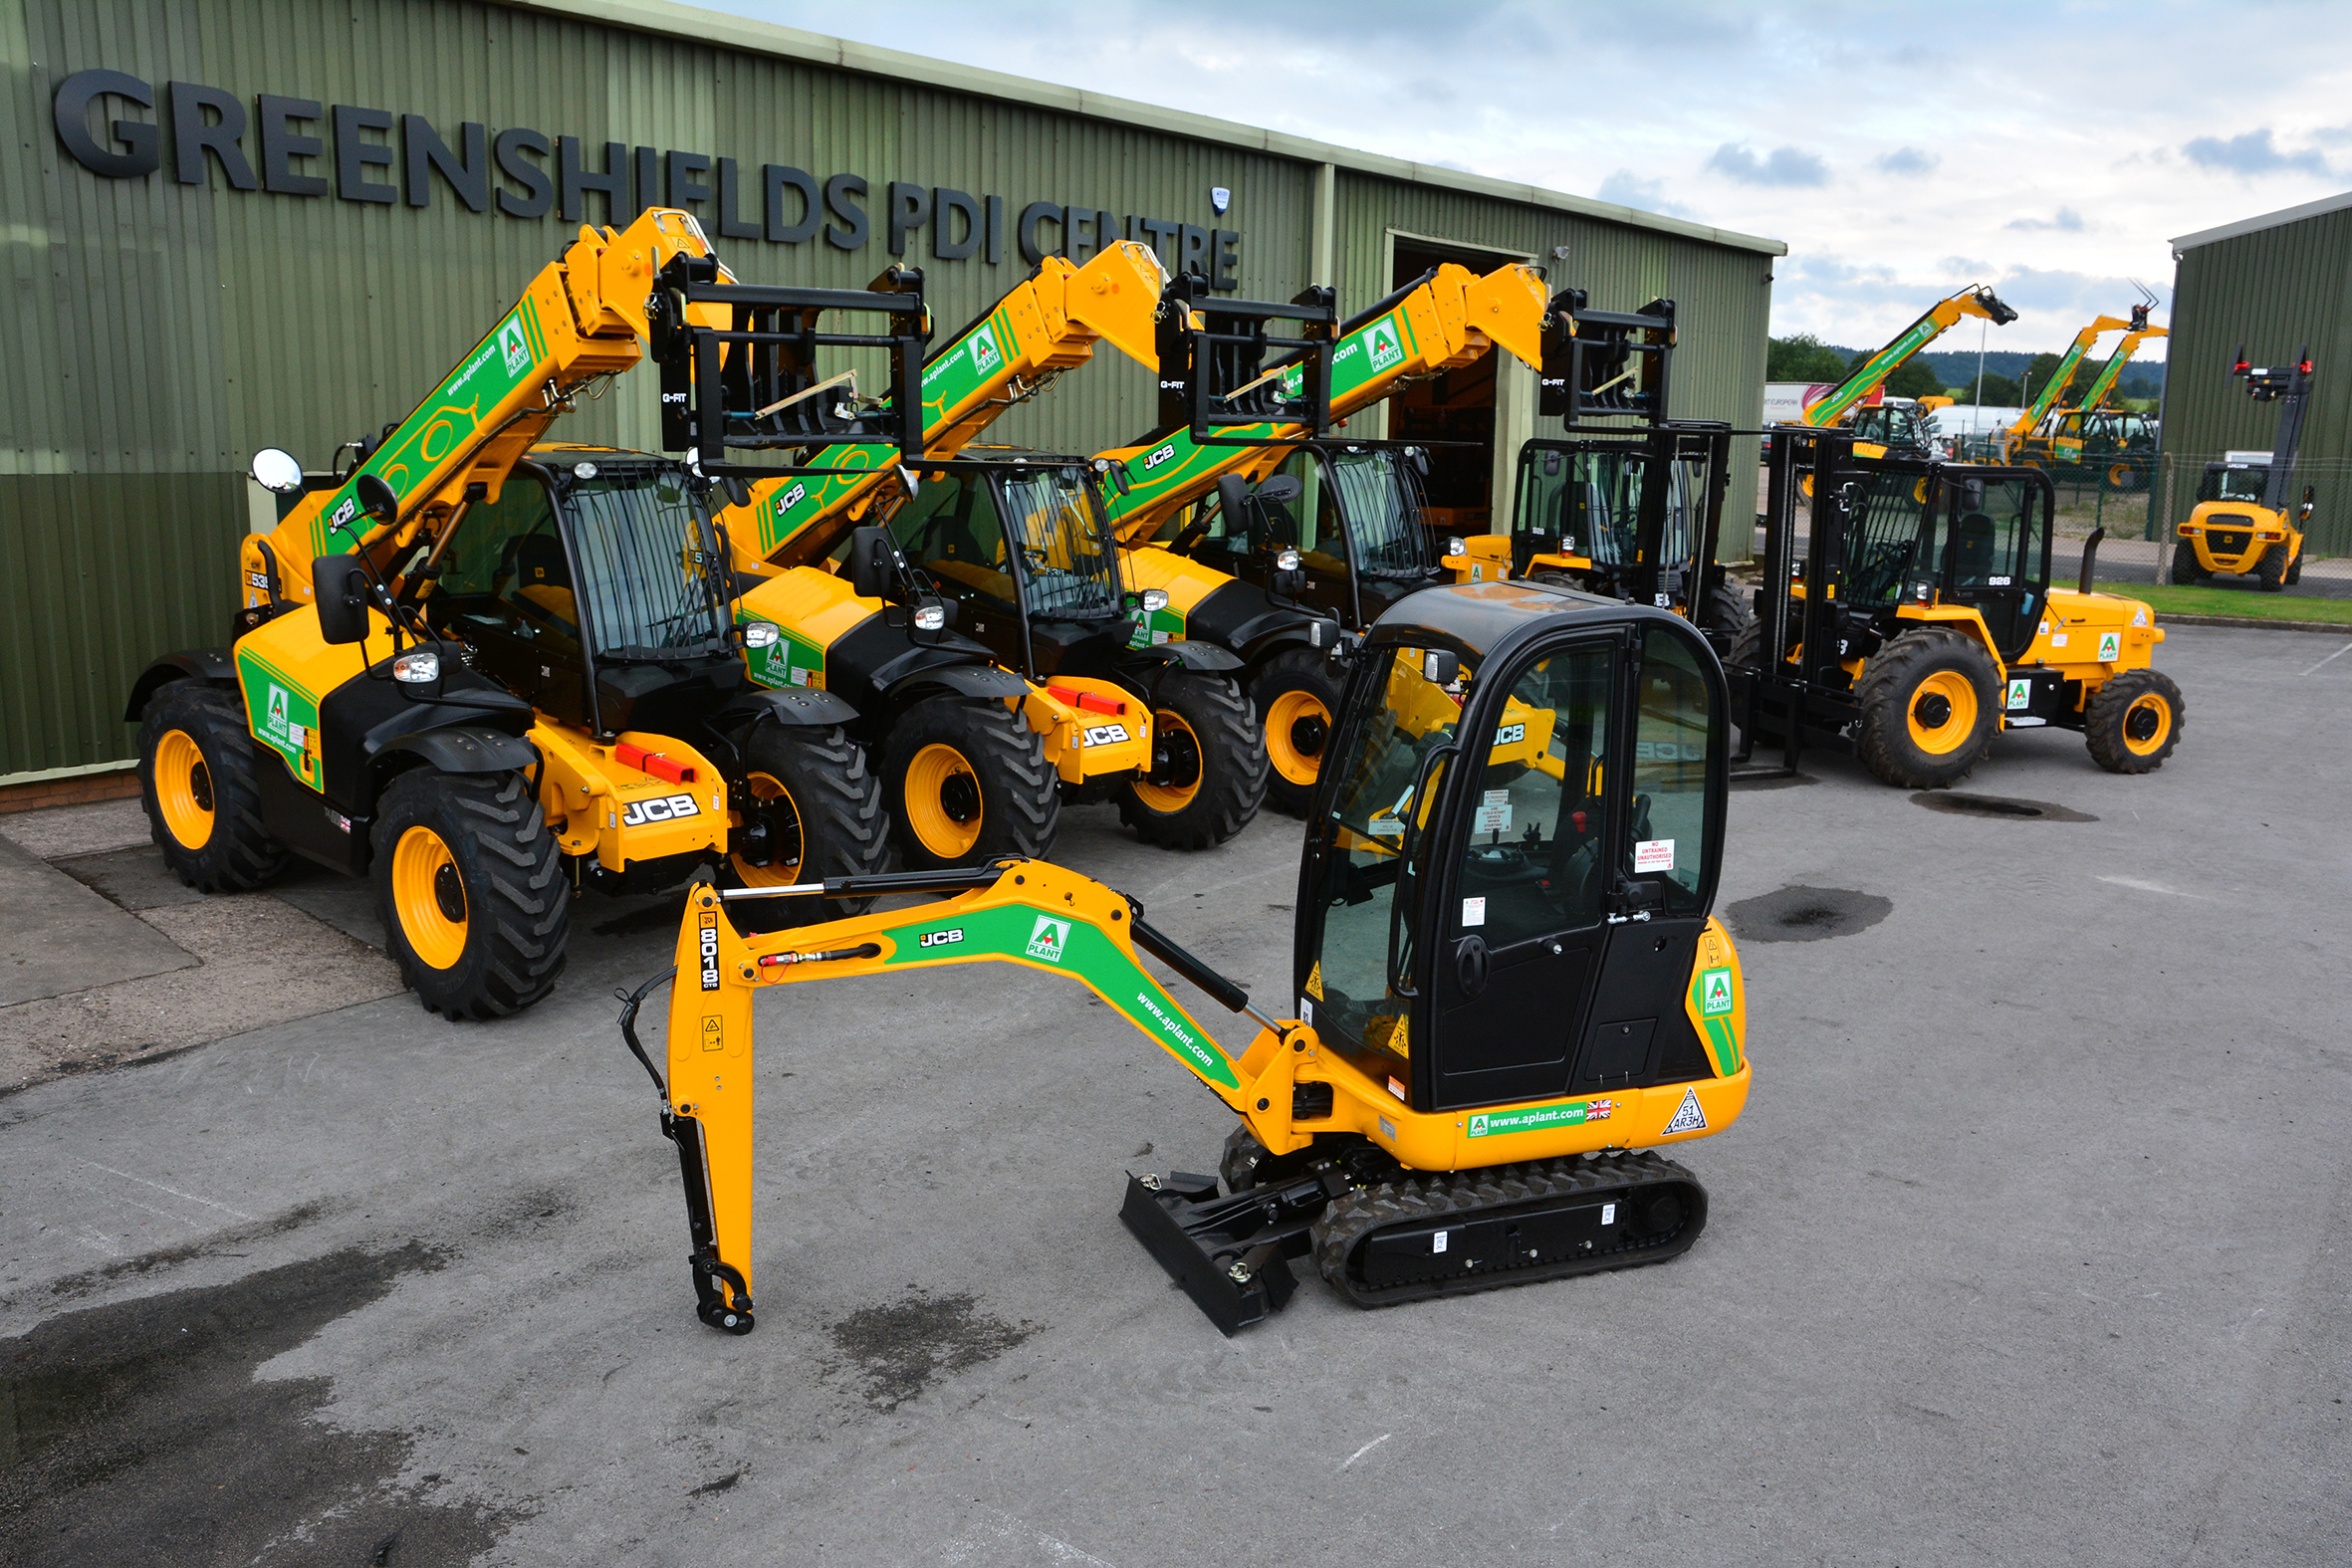 JCB gets order for 1,200 machines in €60 million deal - Agriland ie